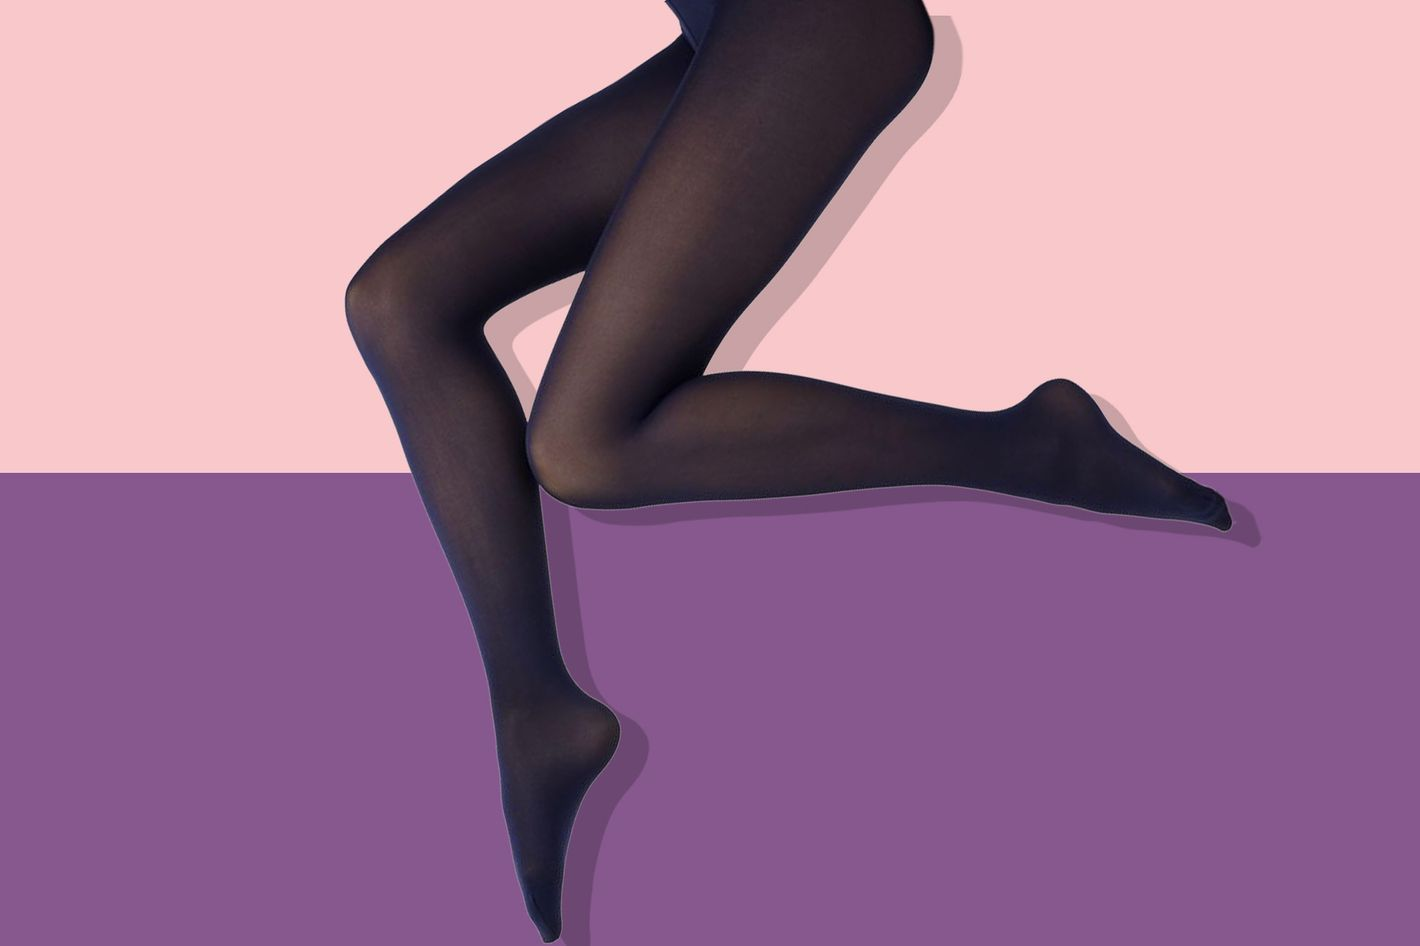 d6d10bb2762 Deal of the Day  Some Culty Wolford Tights You ll Have for Years. By The  Editors. Wolford Velvet De Luxe 50 Tights